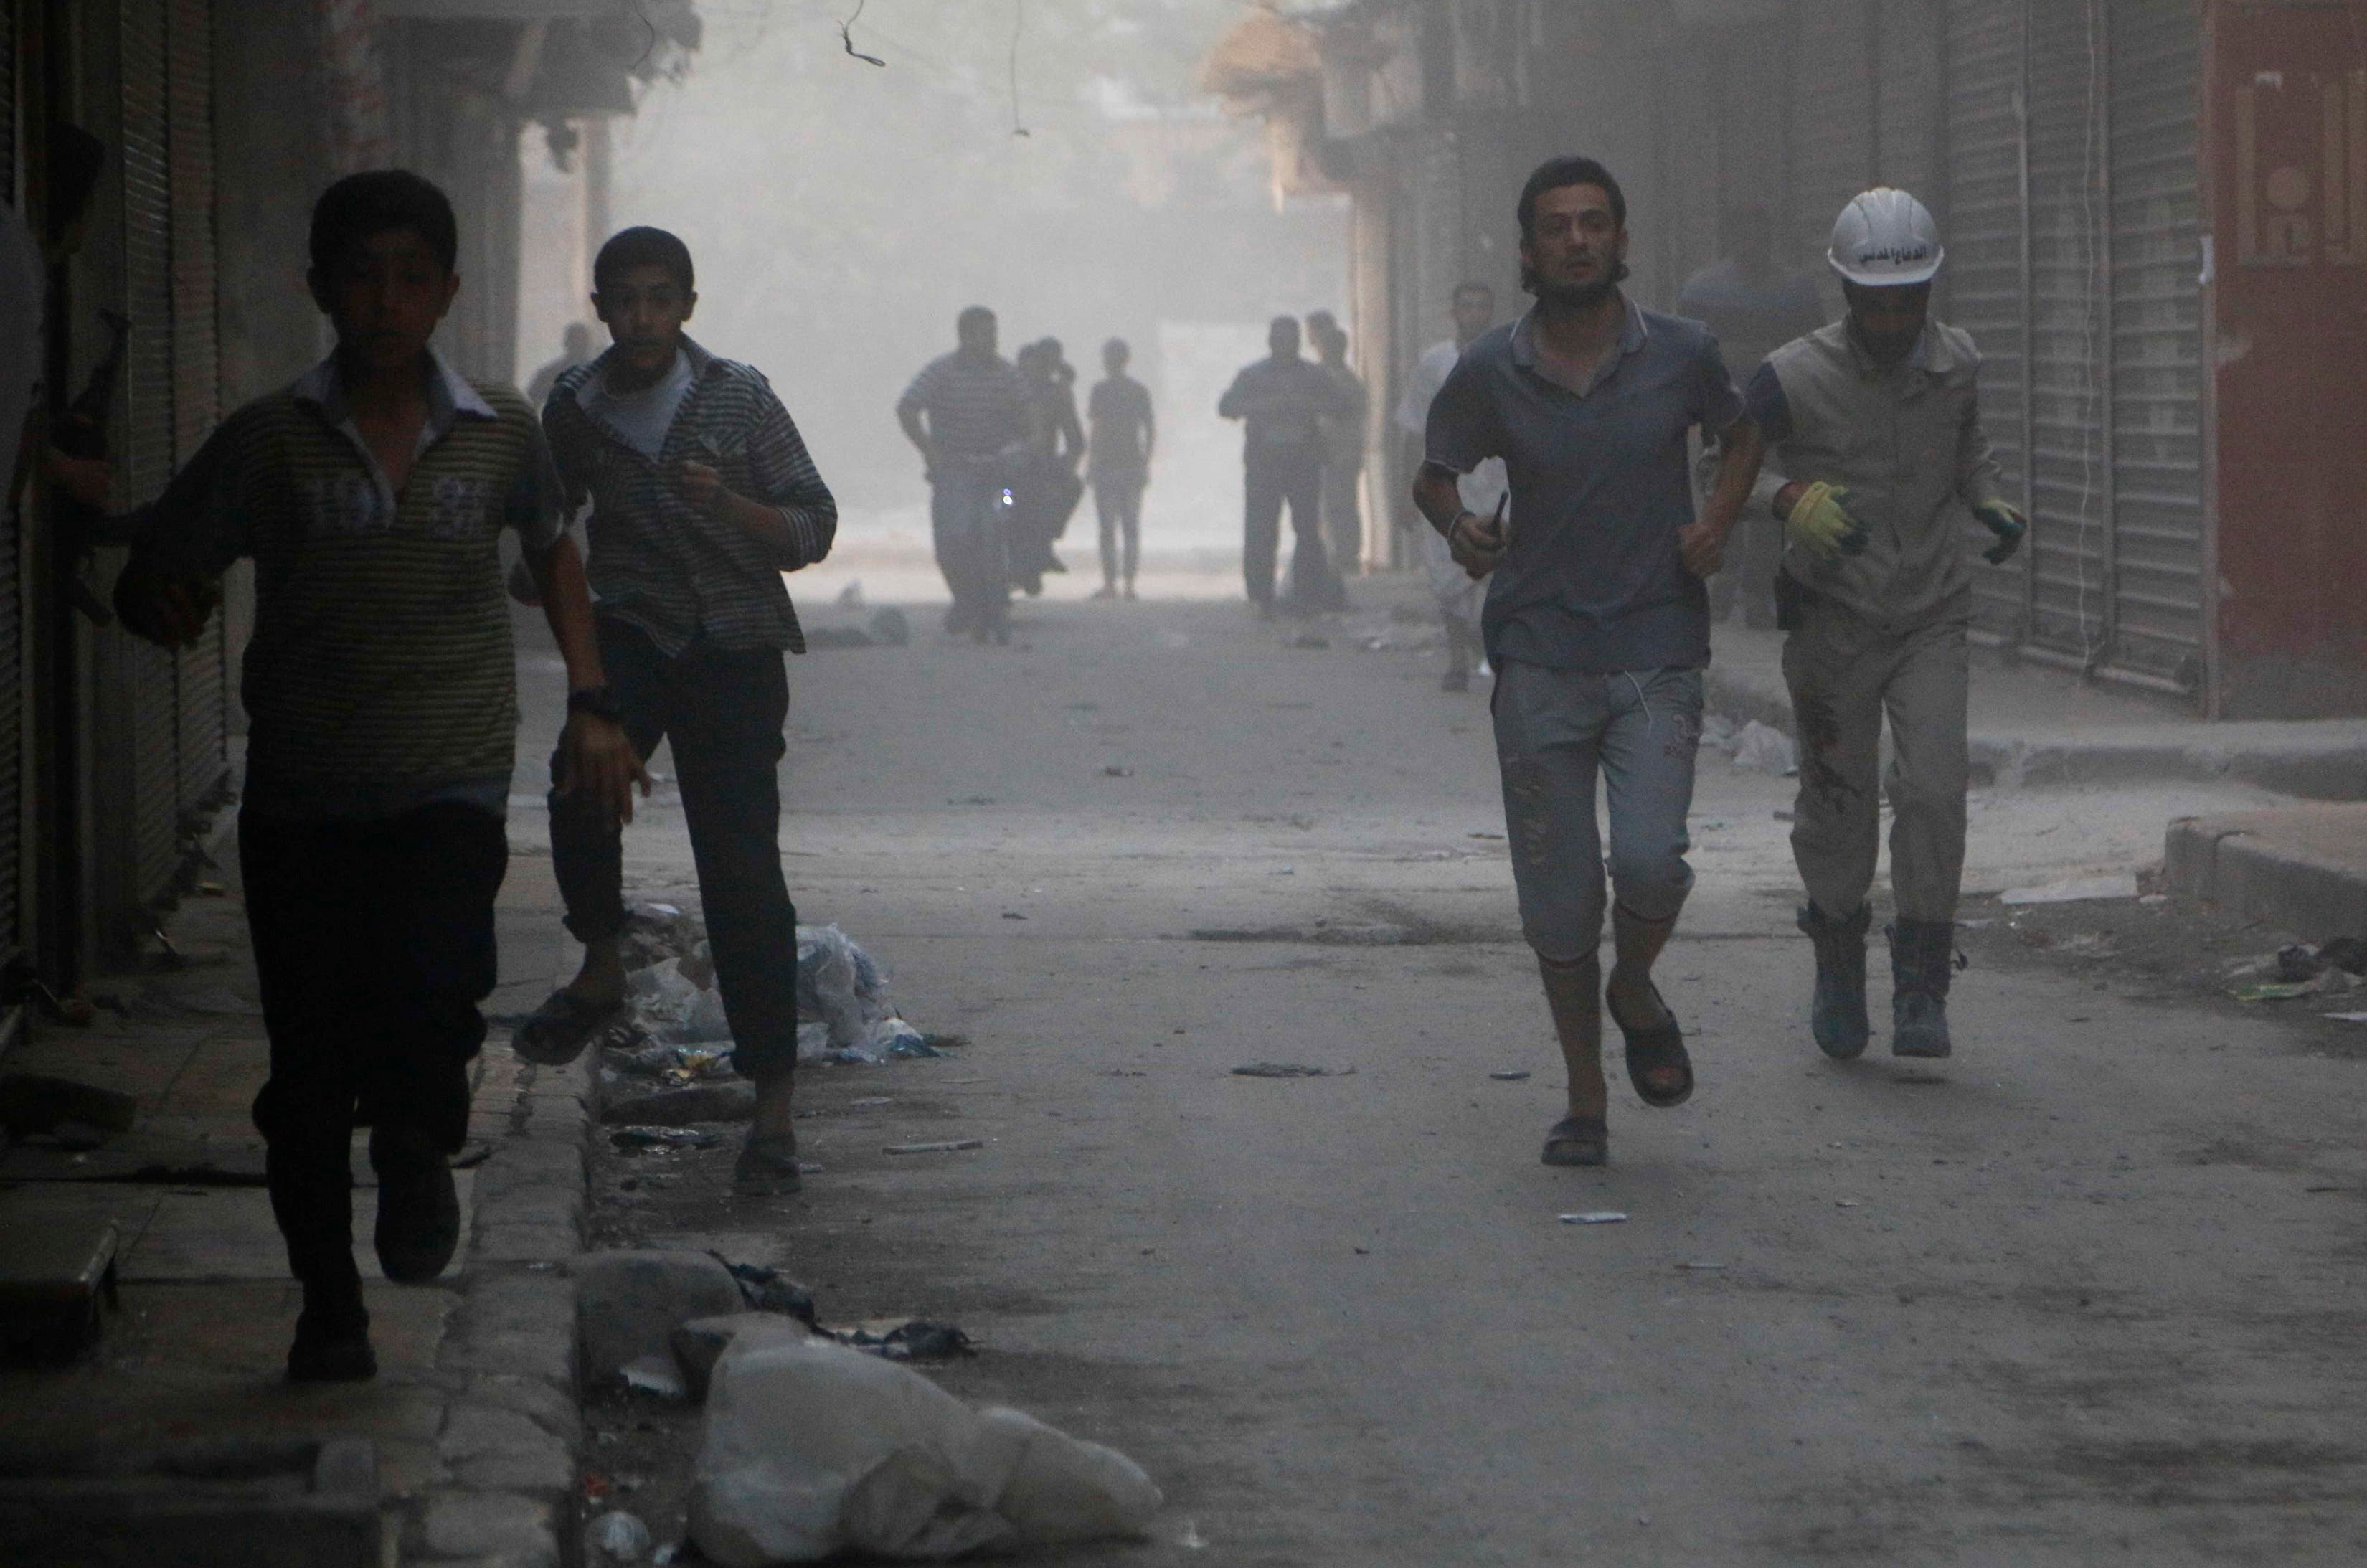 Aleppo: the aftermath of an airstrike